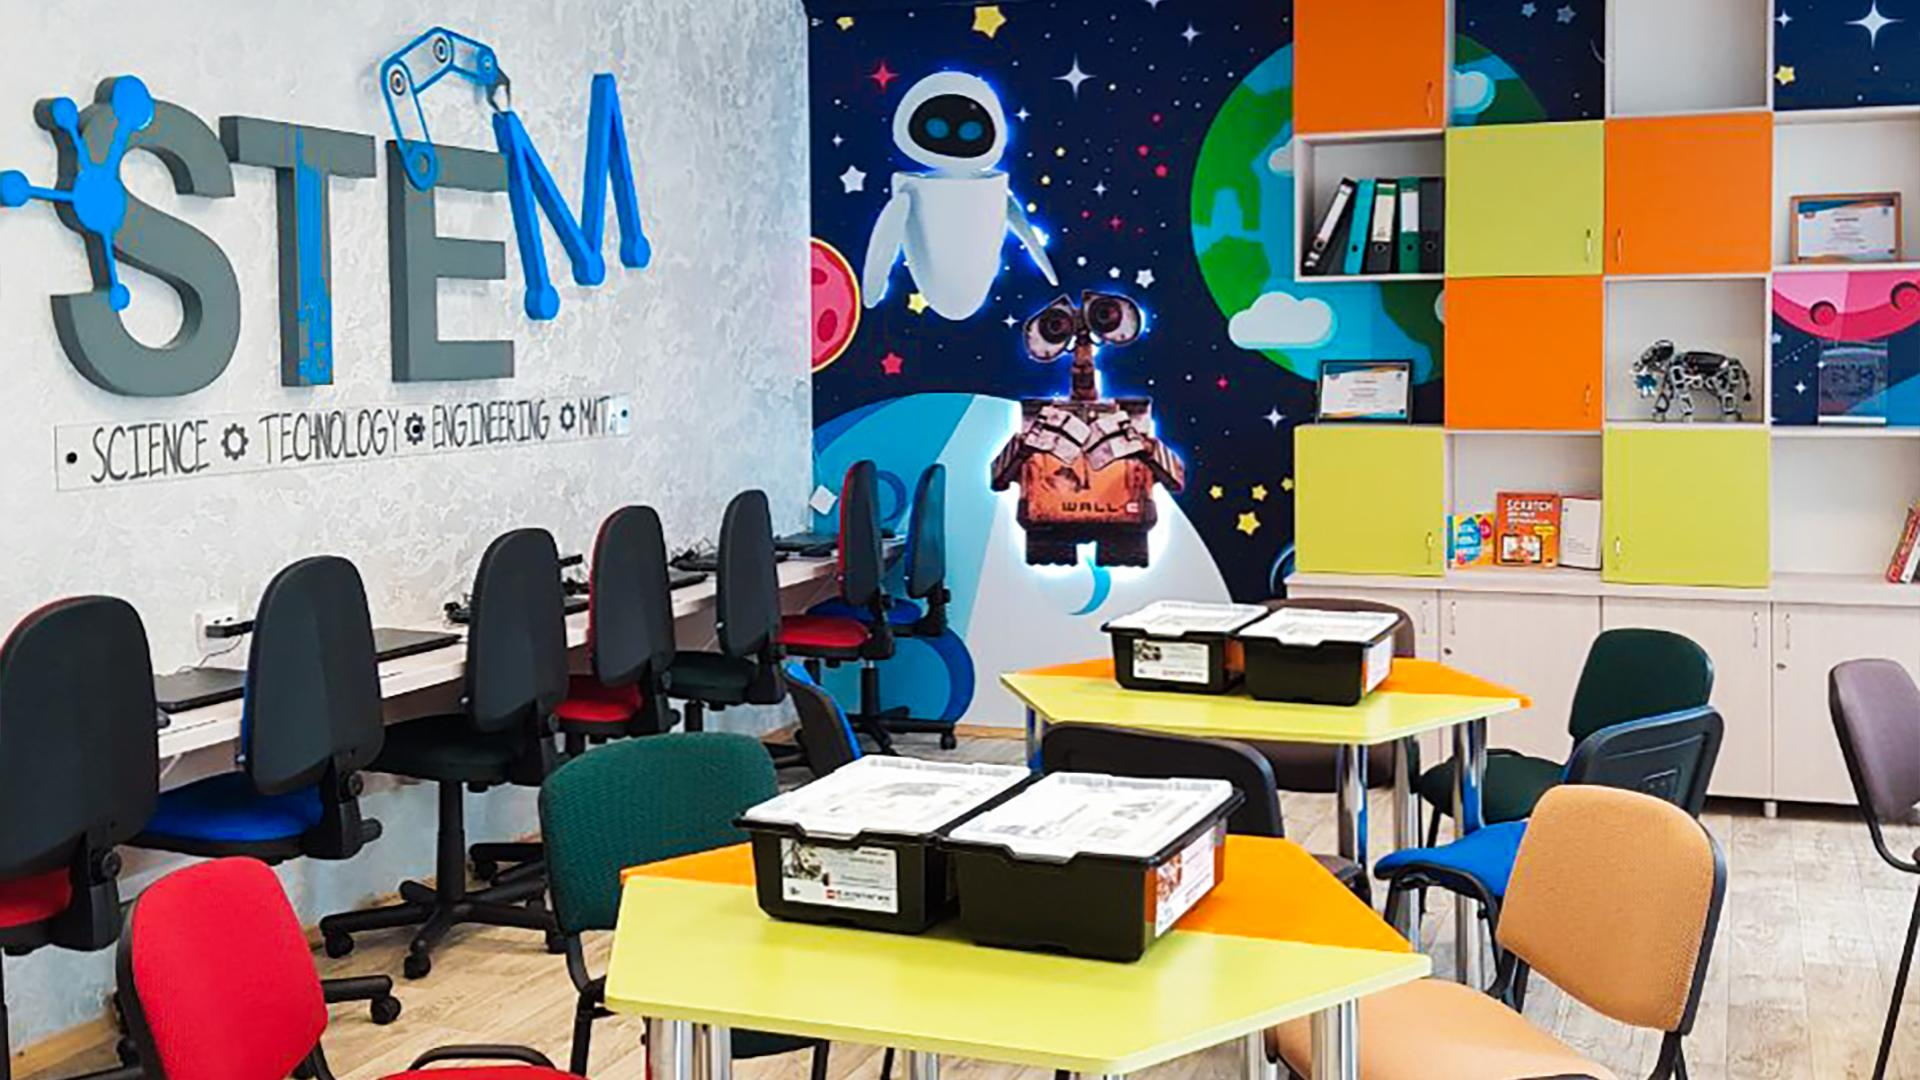 School STEM-centre in Belarus sponsored by Easybrain